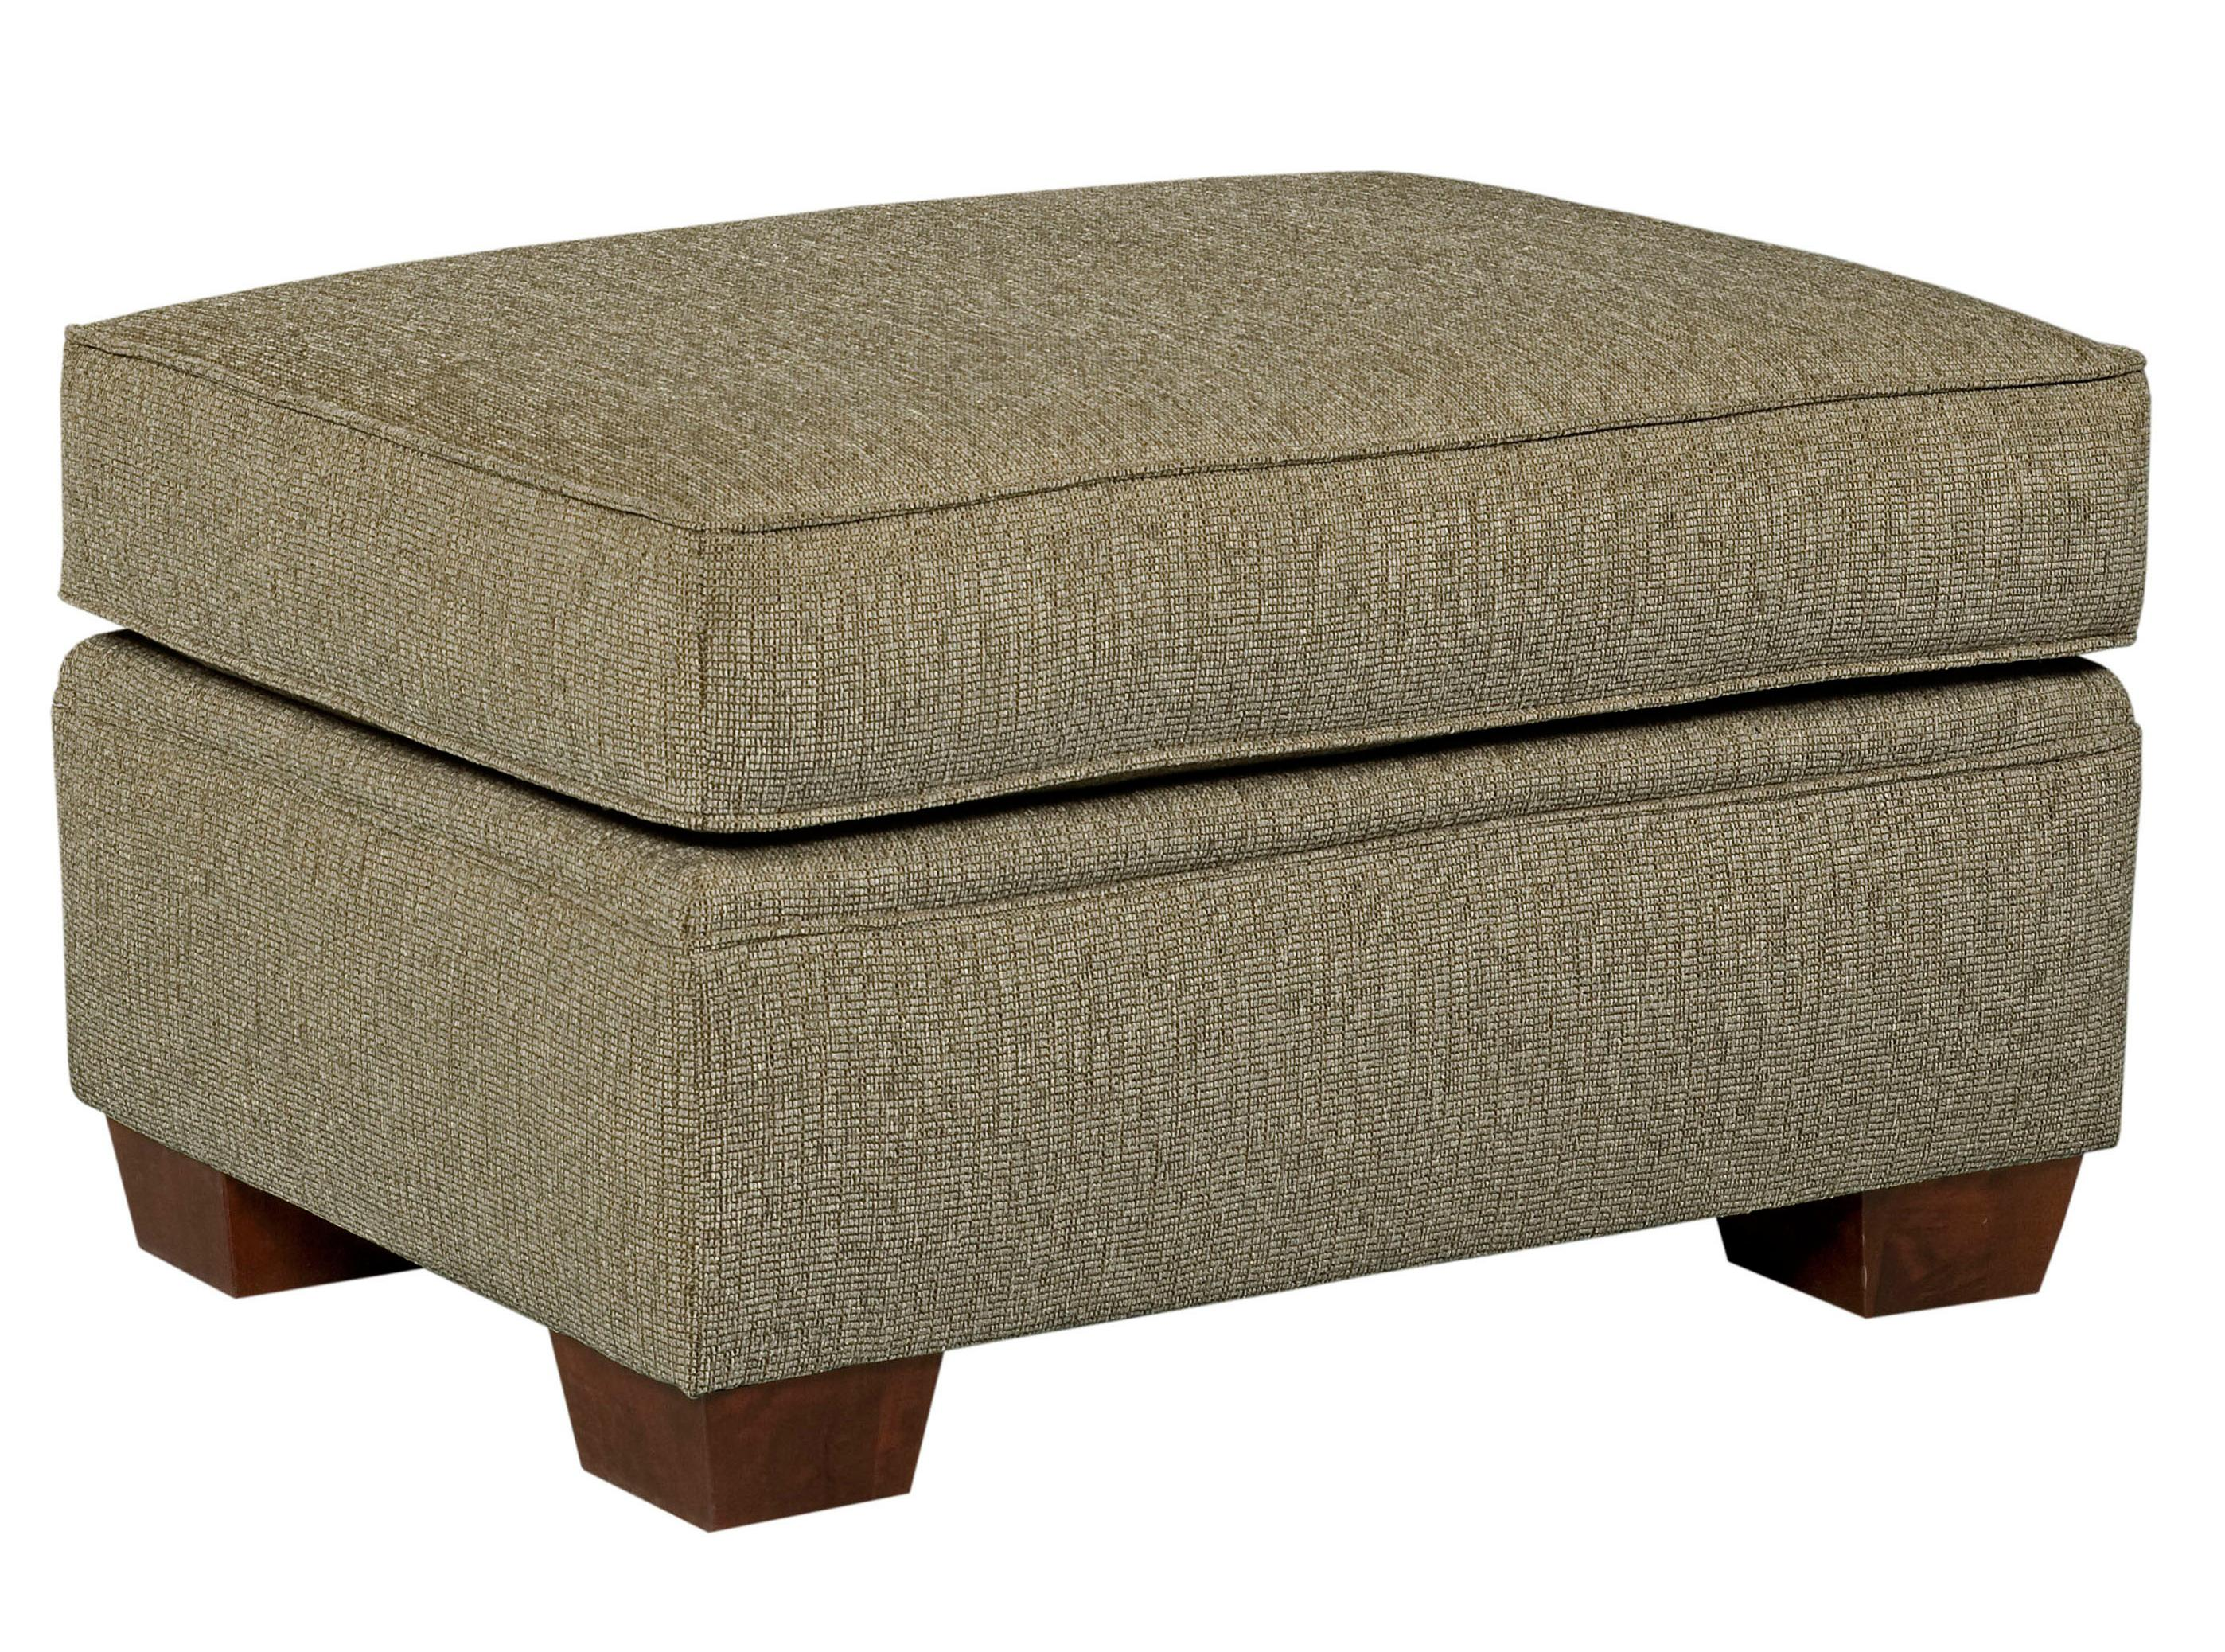 Broyhill Furniture Miller Casual Ottoman - Item Number: 5300-5